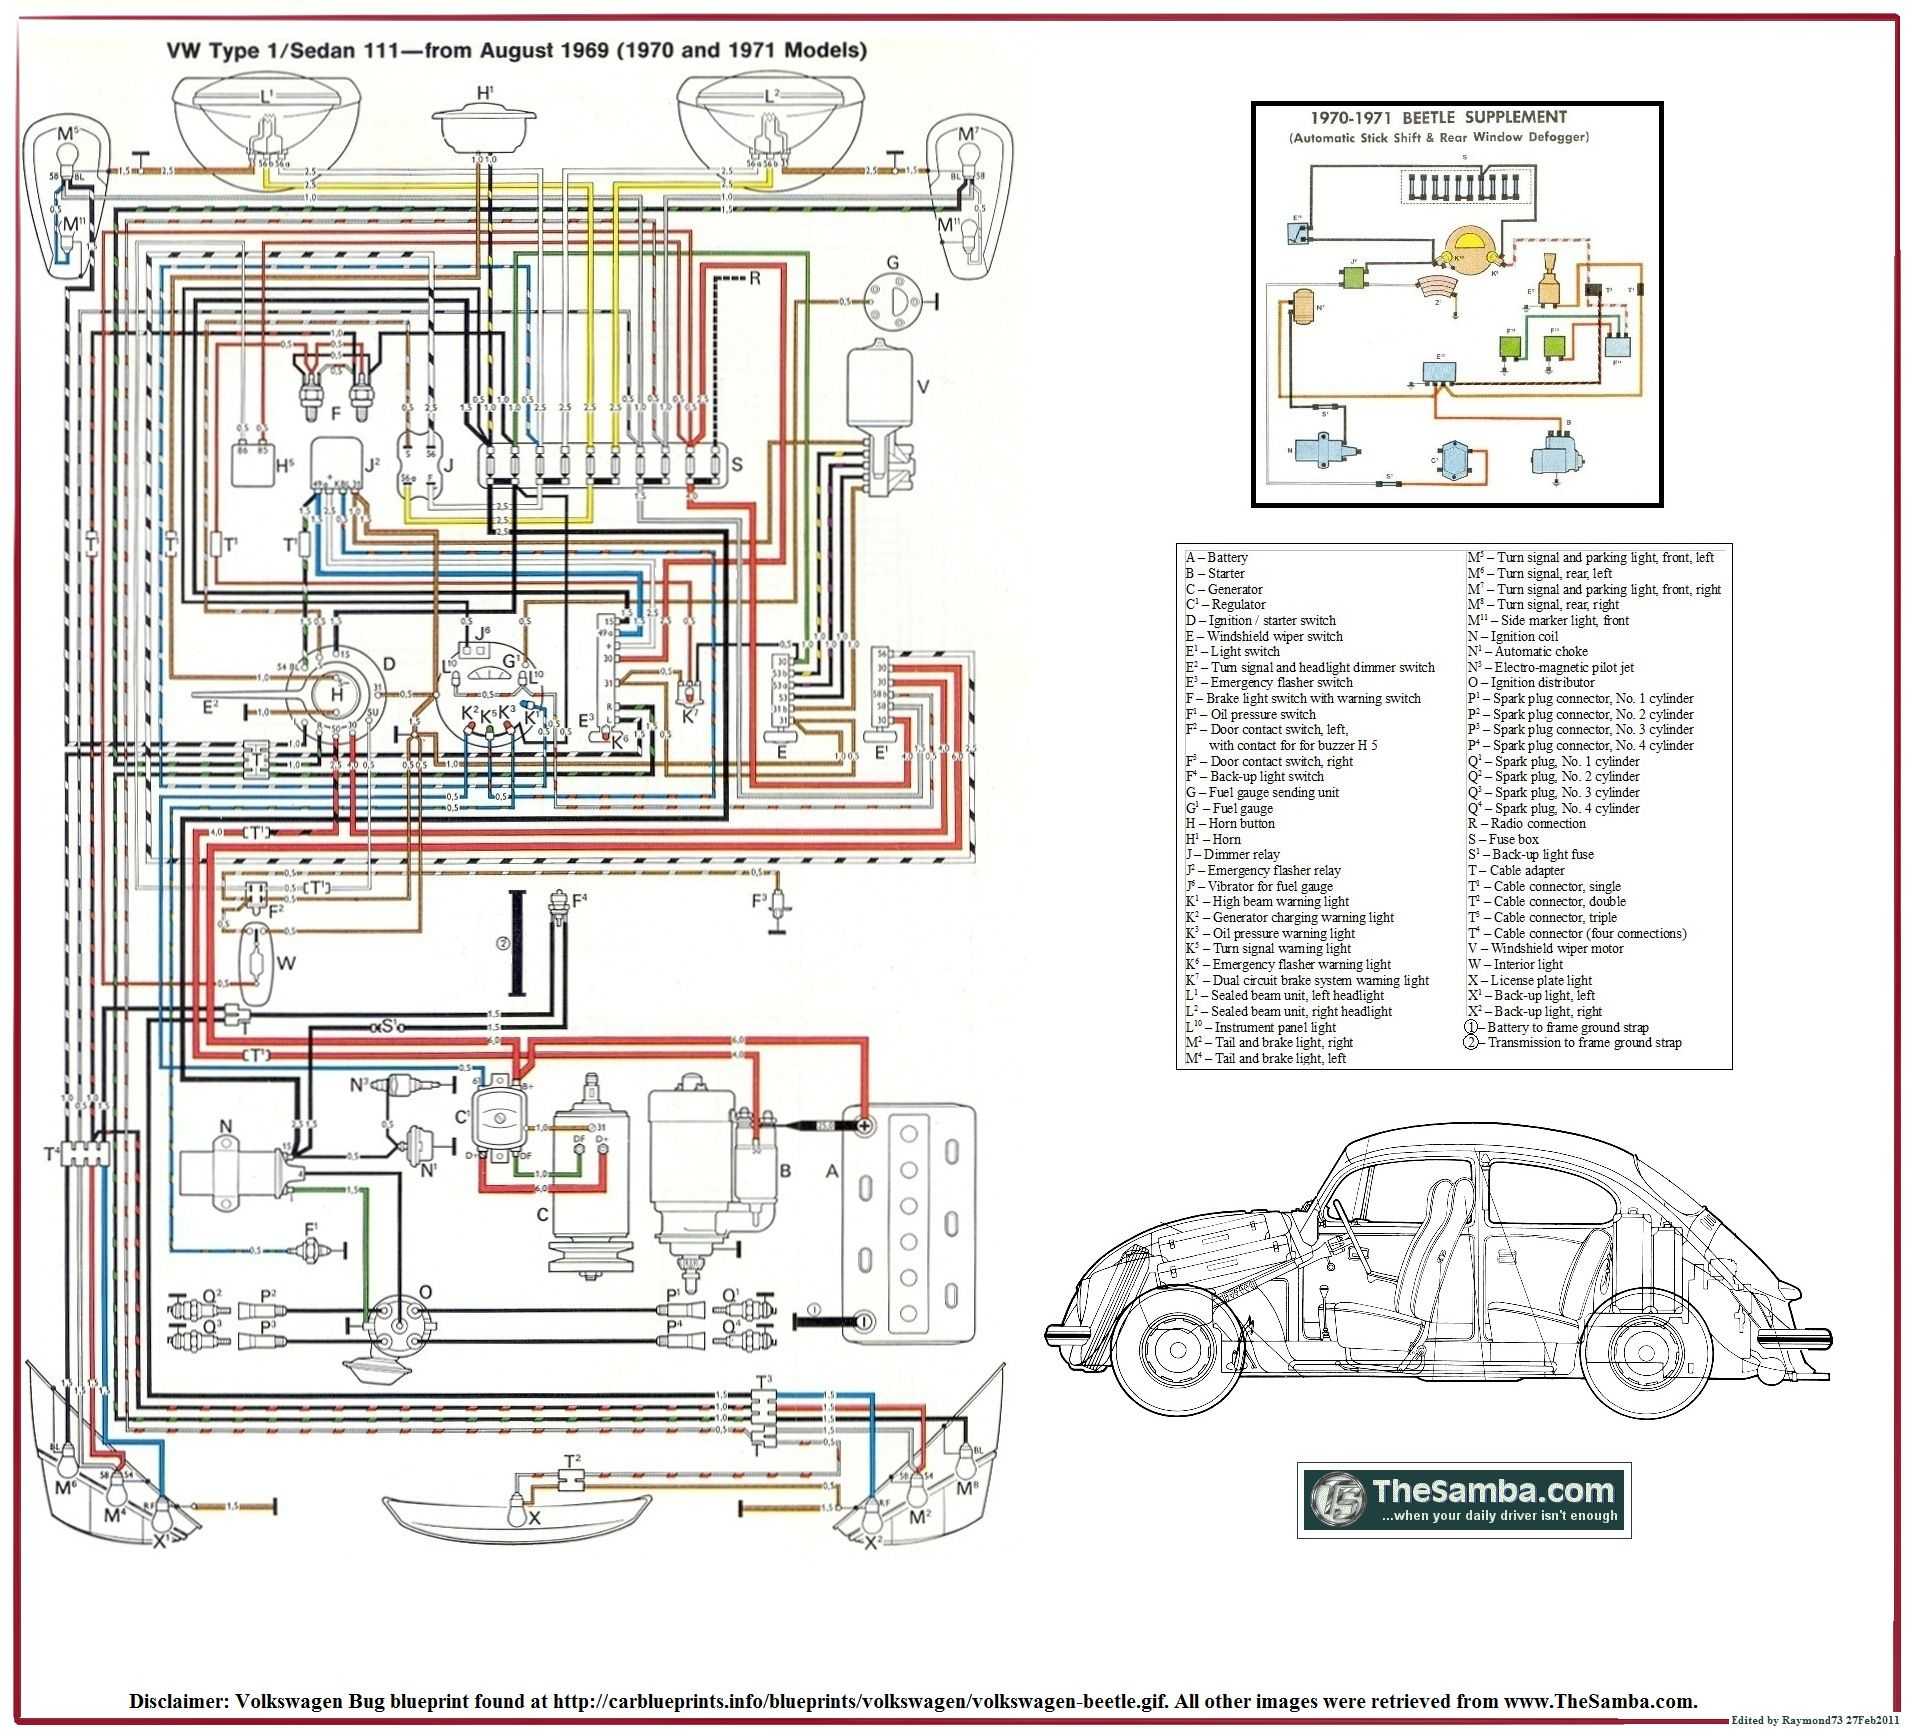 mexican vw beetle wiring diagram [ 1920 x 1736 Pixel ]